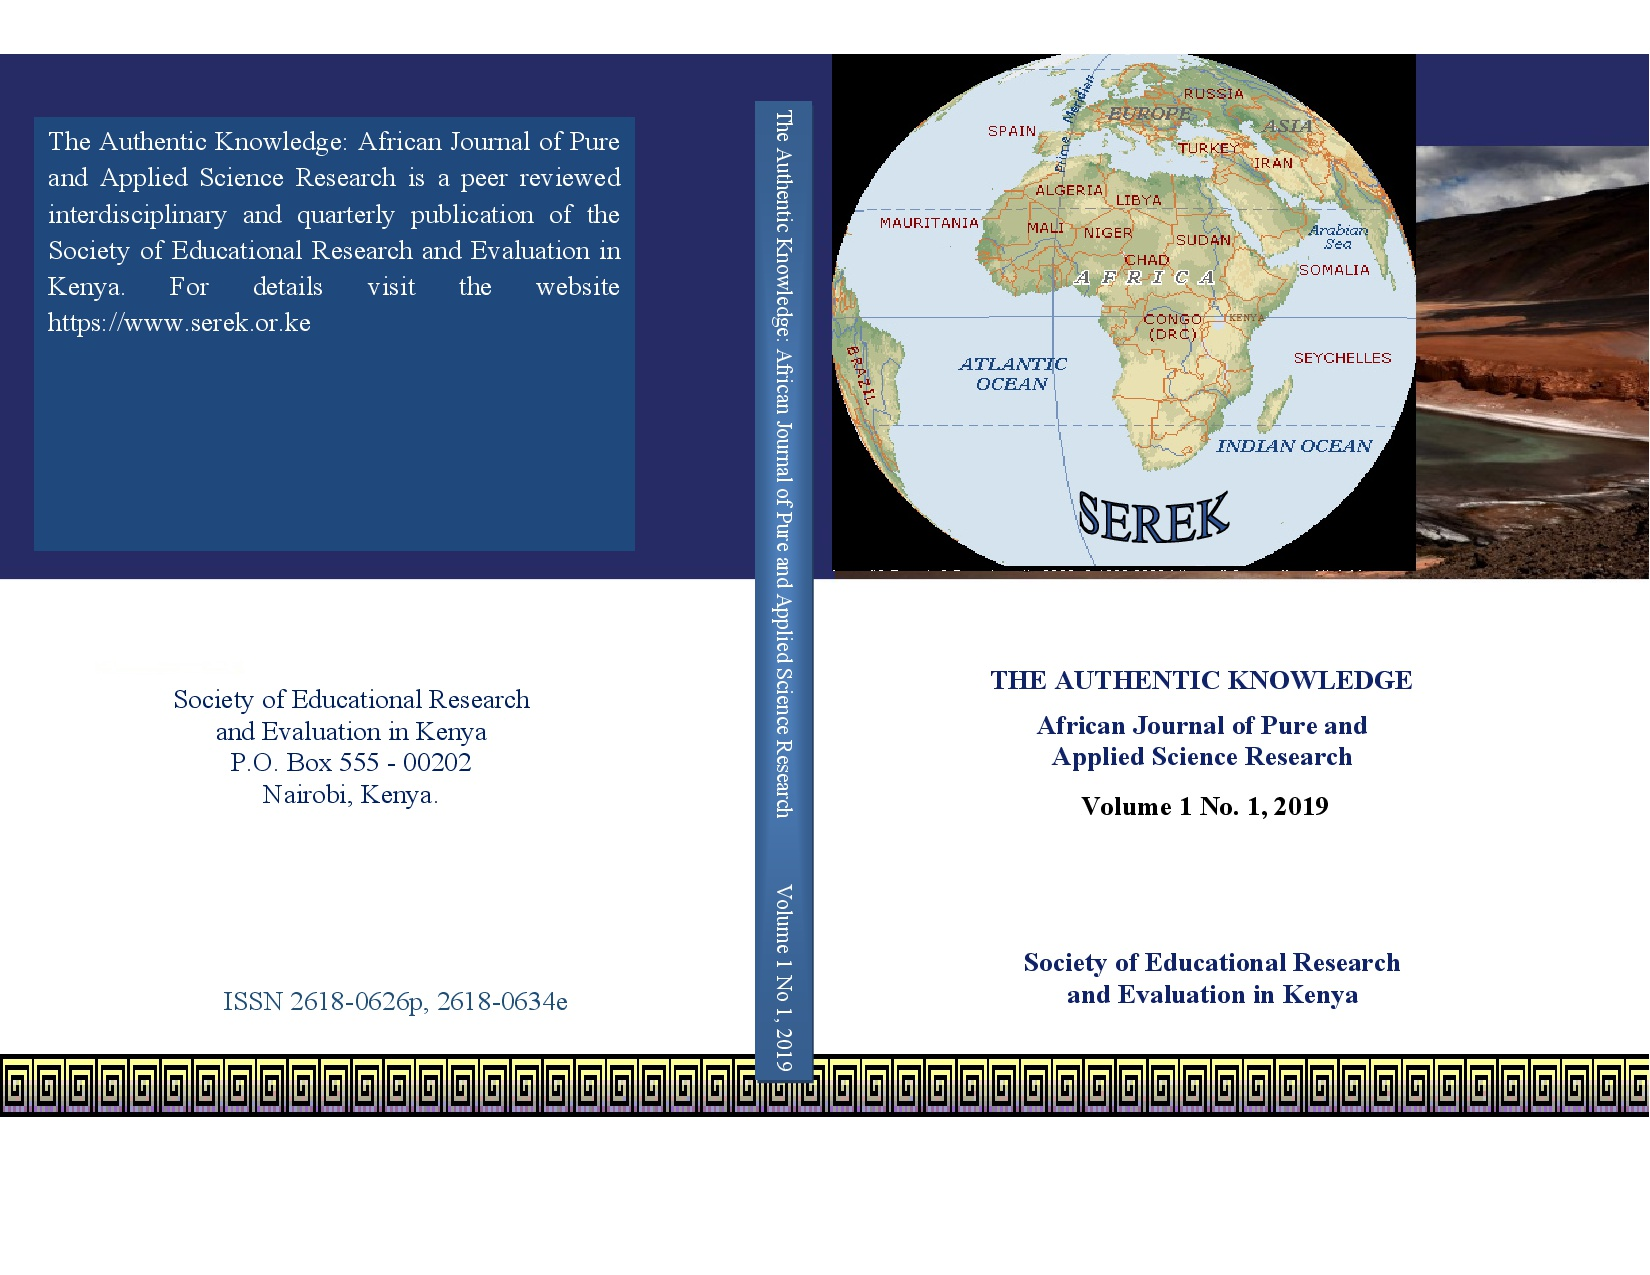 The Authentic Knowledge: African Journal of Pure and Applied Sceince Research